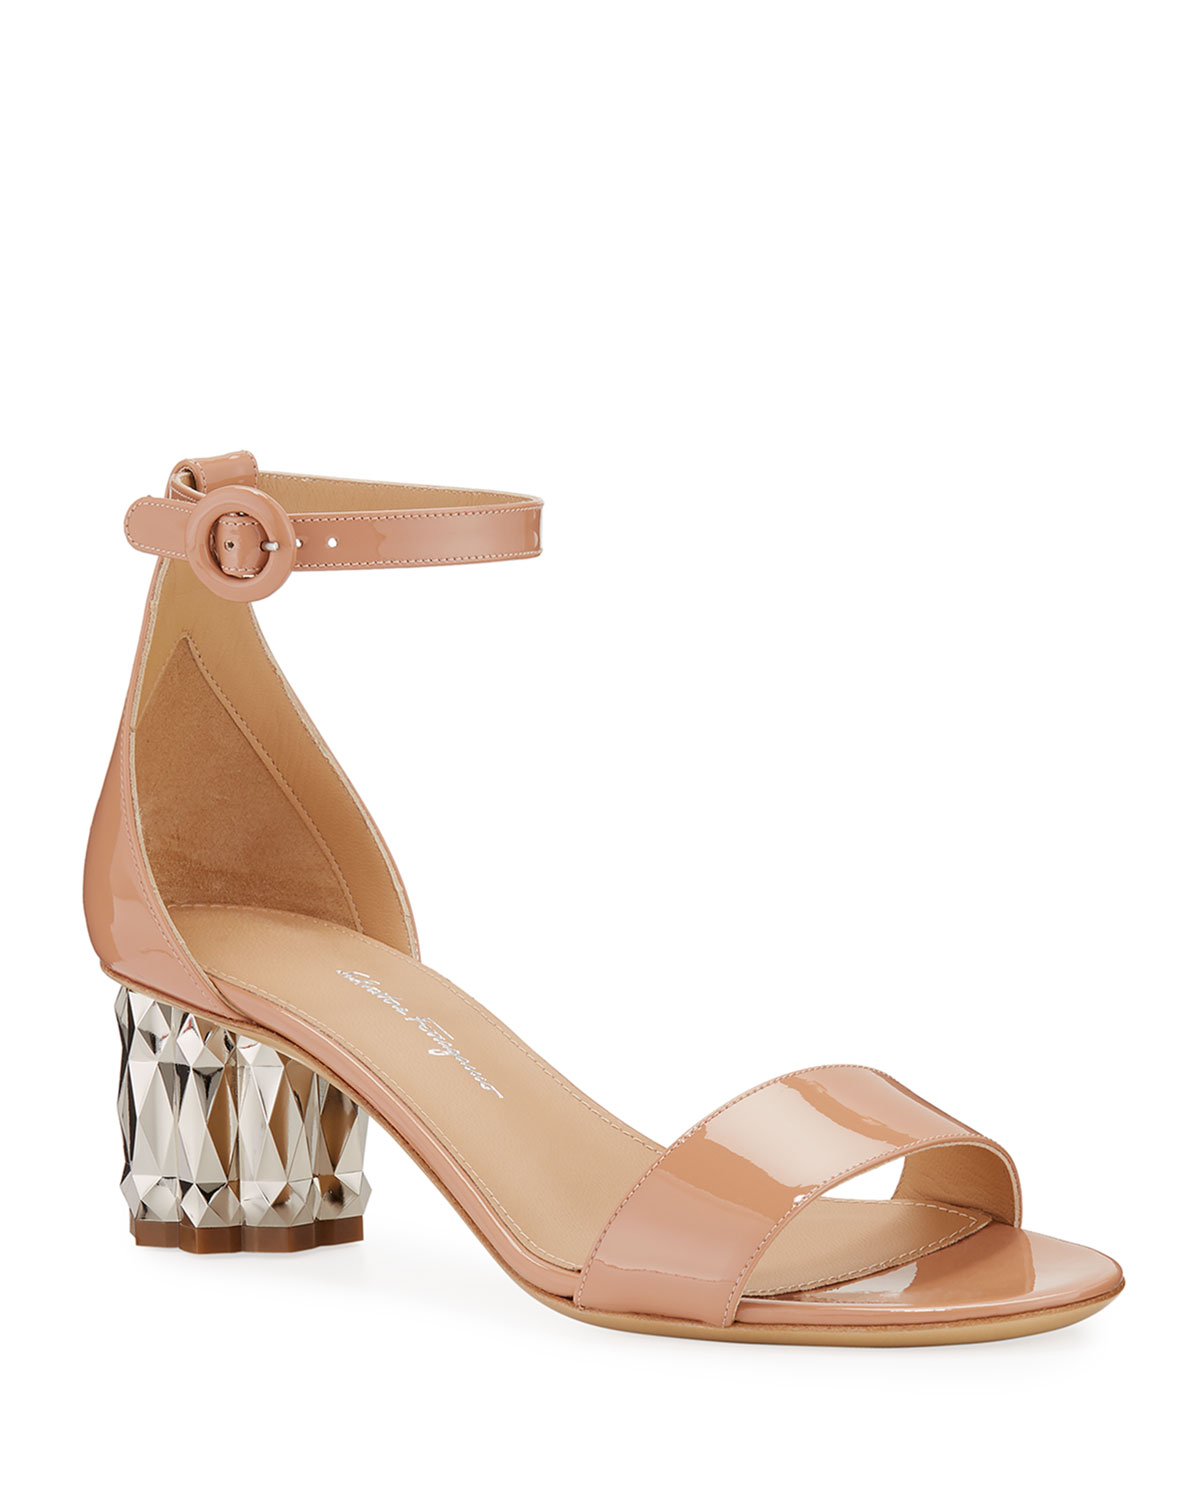 Azalea 55 Patent Leather Metallic-Heel Sandals